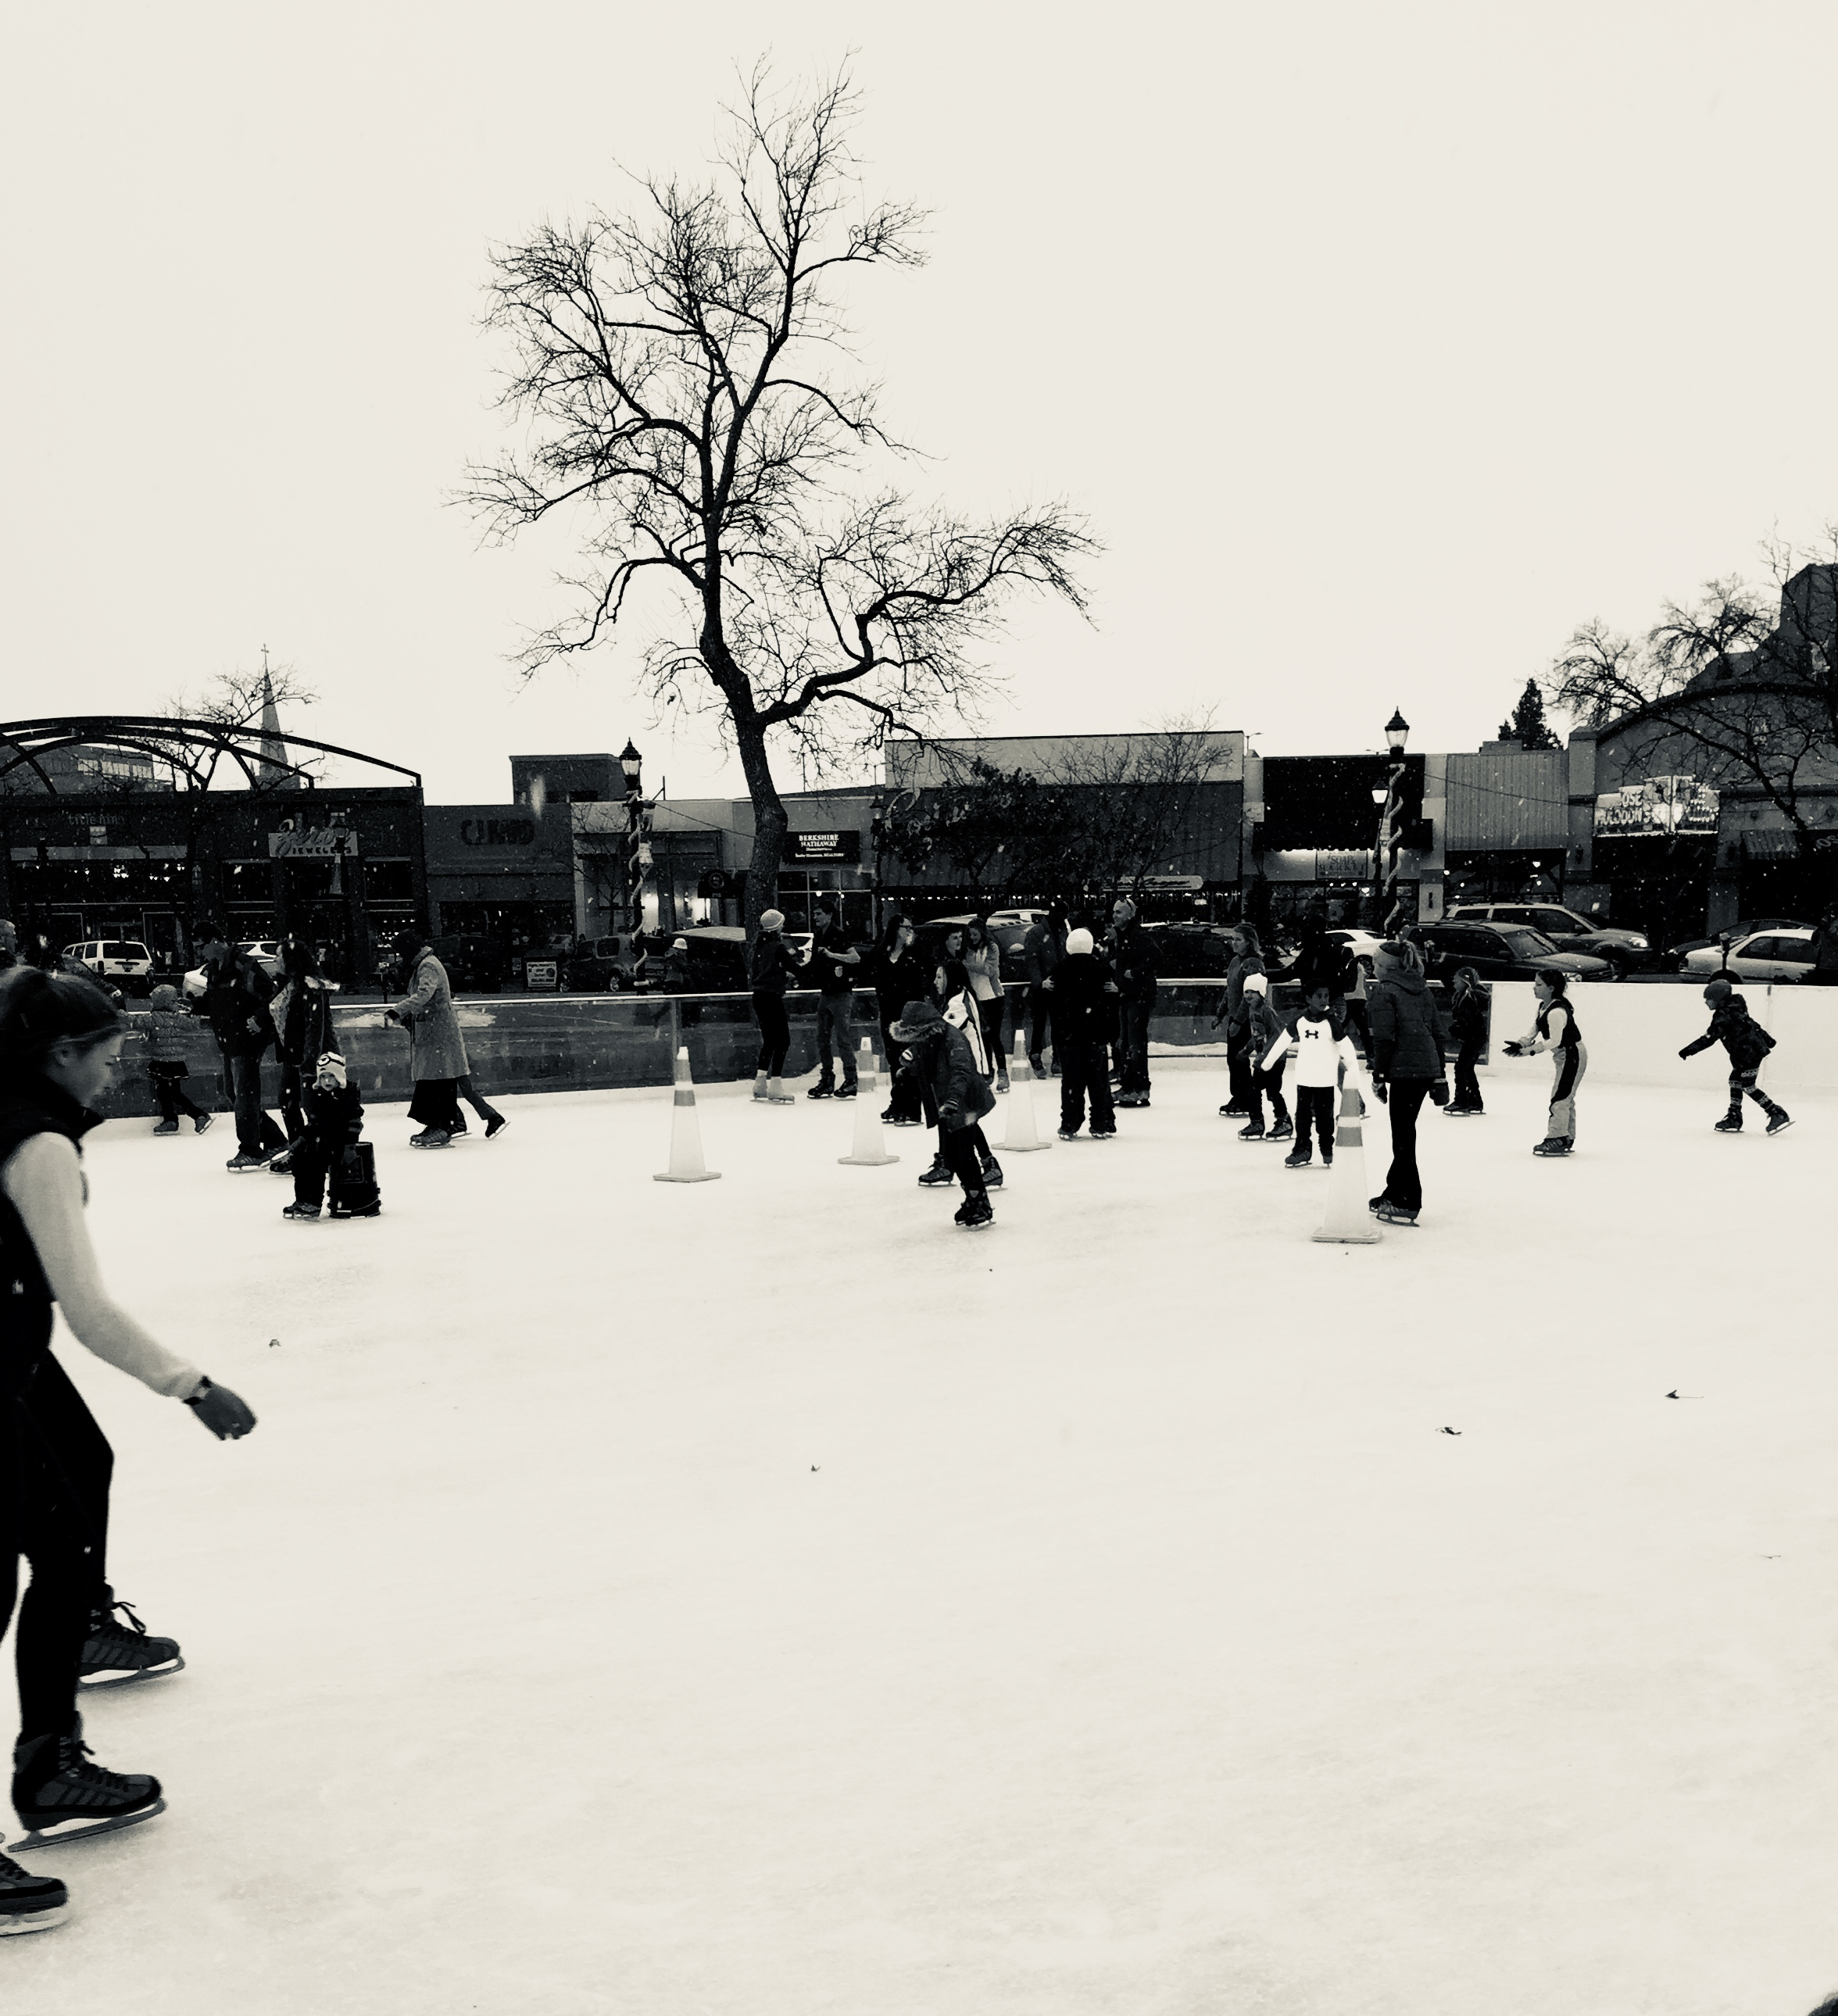 Skate in the Park Returns for Another Season